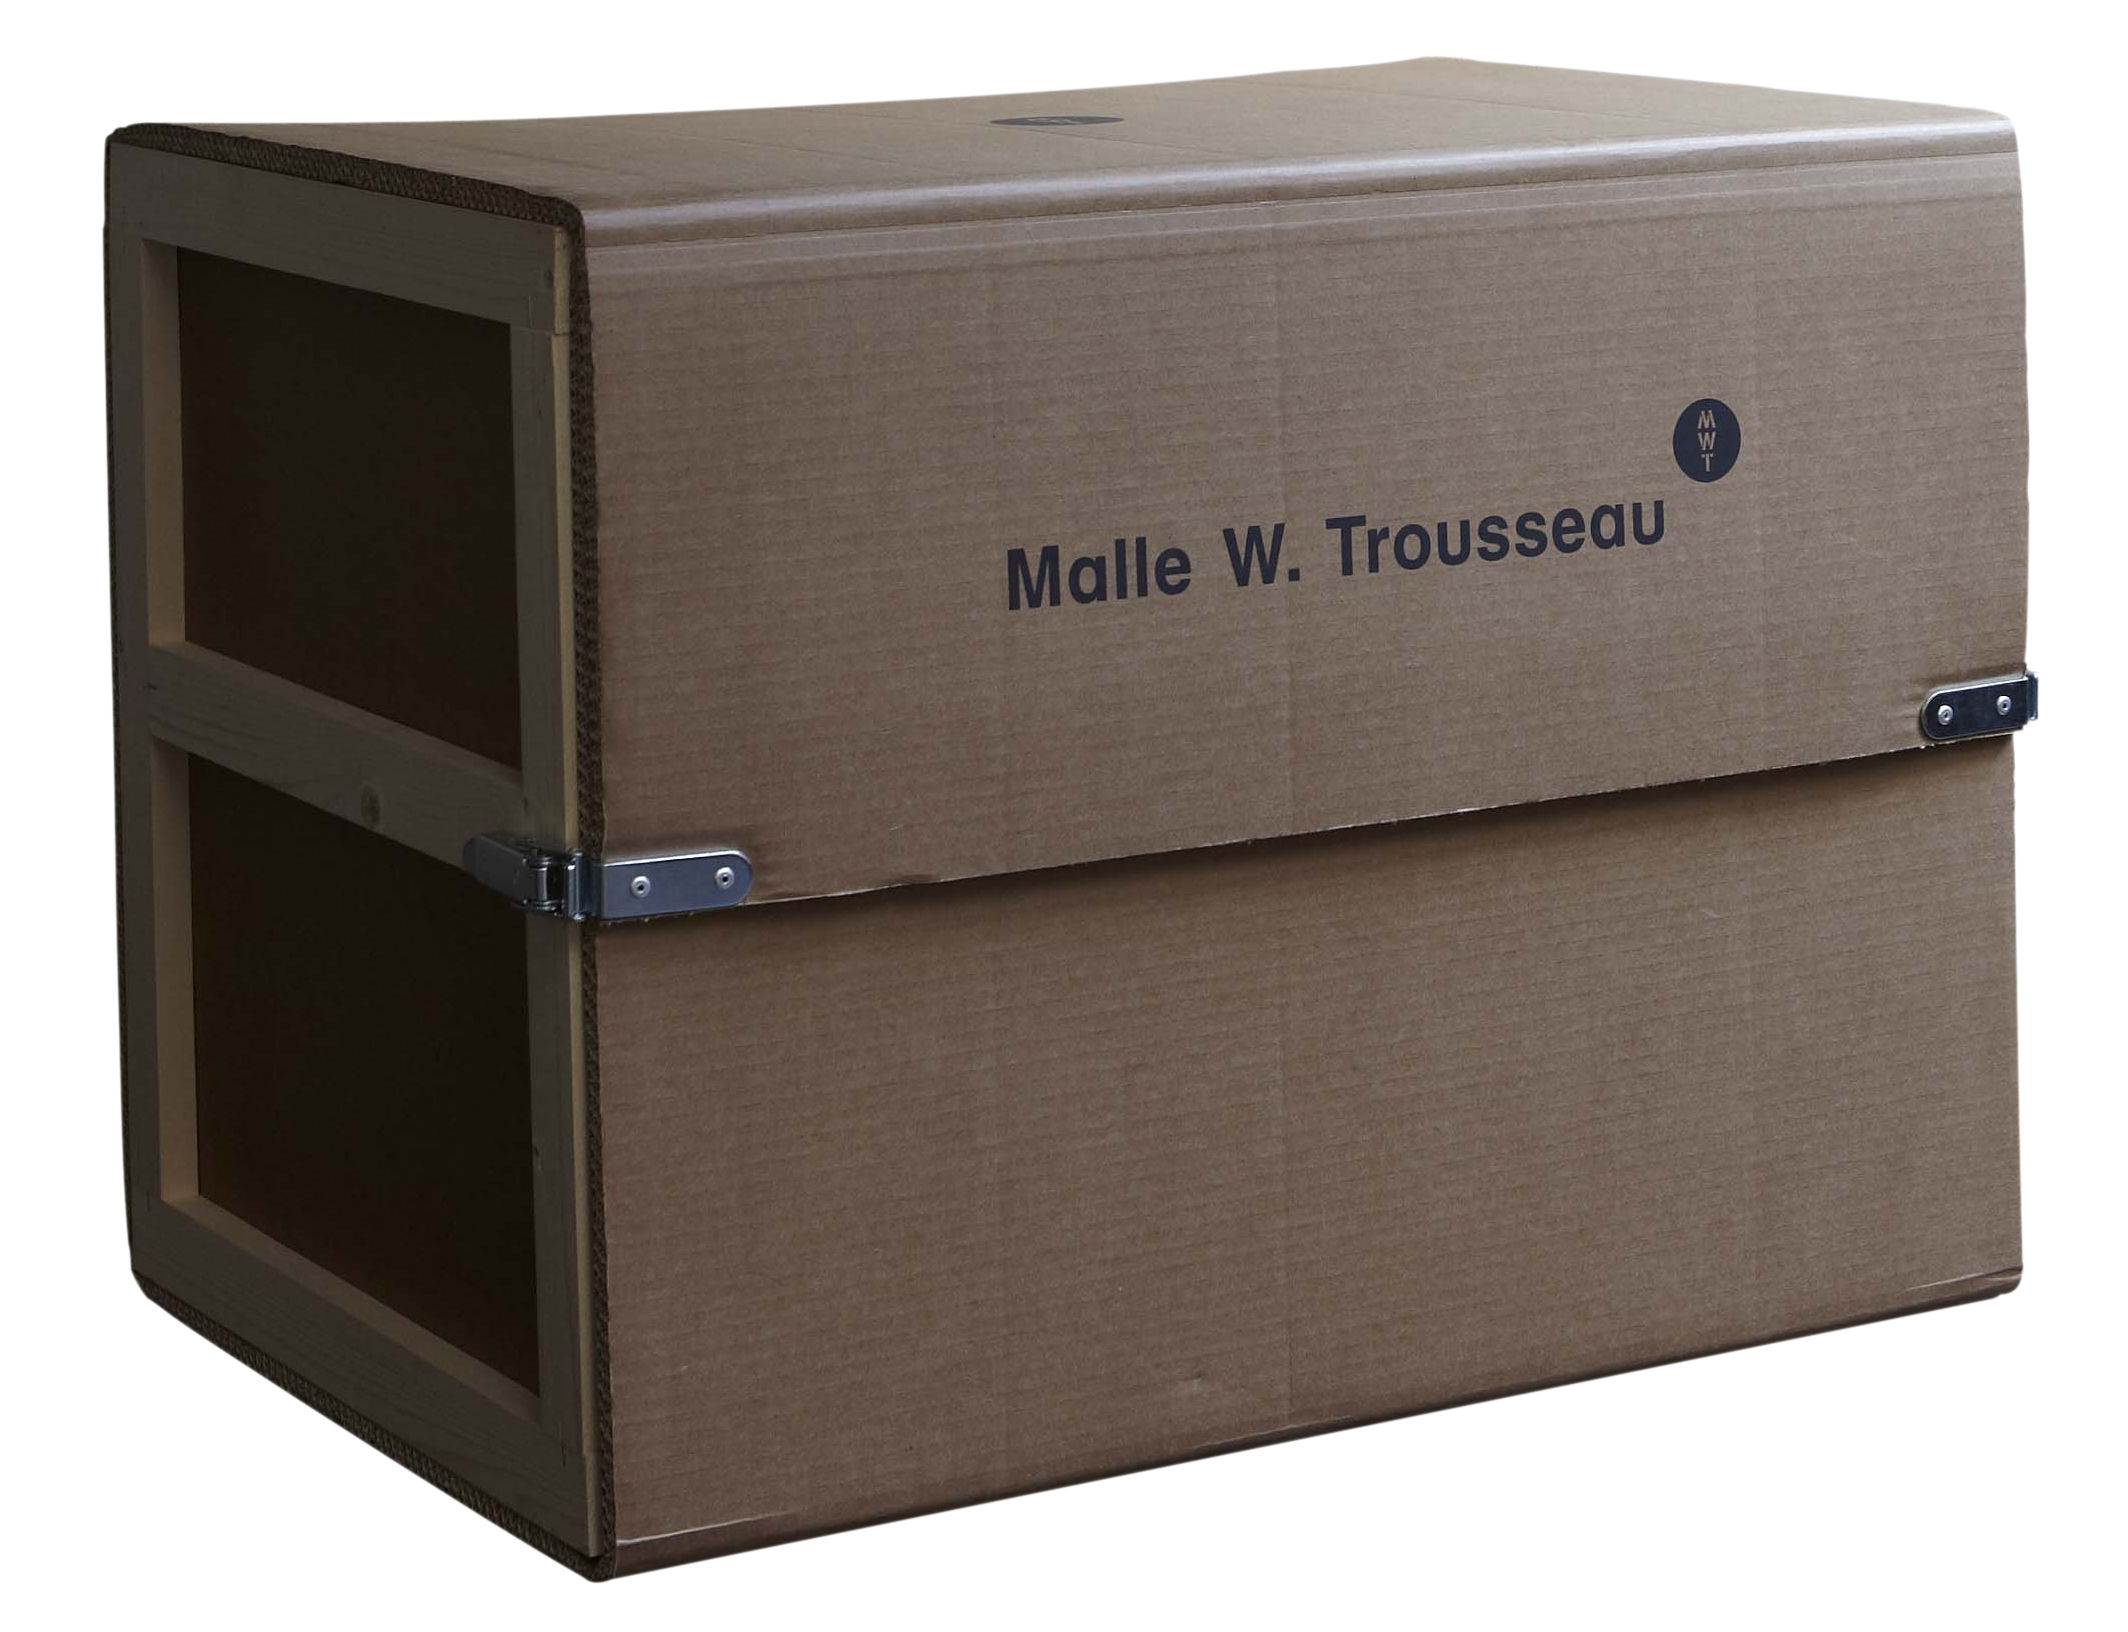 Kitchenware - Kitchen Equipment - Malle W. Trousseau Kitchenware set - Complete trunk - 43 kitchen essentials : cutting, cooking and containers by Malle W. Trousseau - Cardboard - Cardboard, Metal, Wood